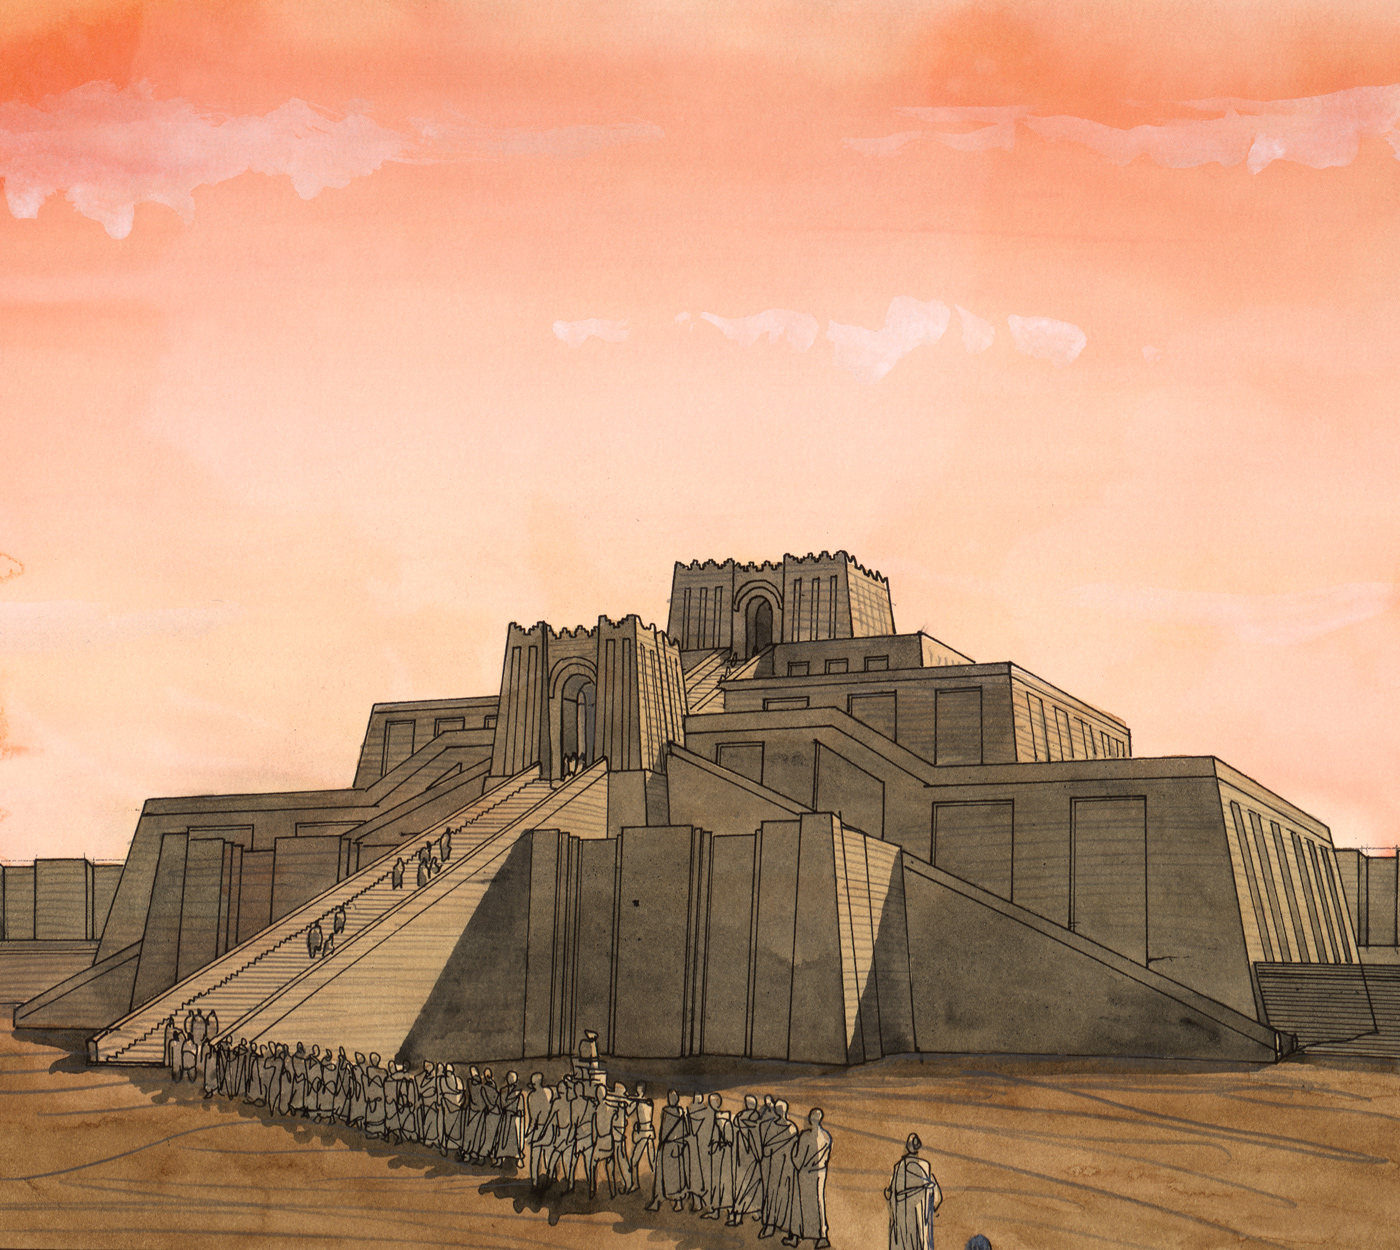 Ziggurat or why people are talking different languages